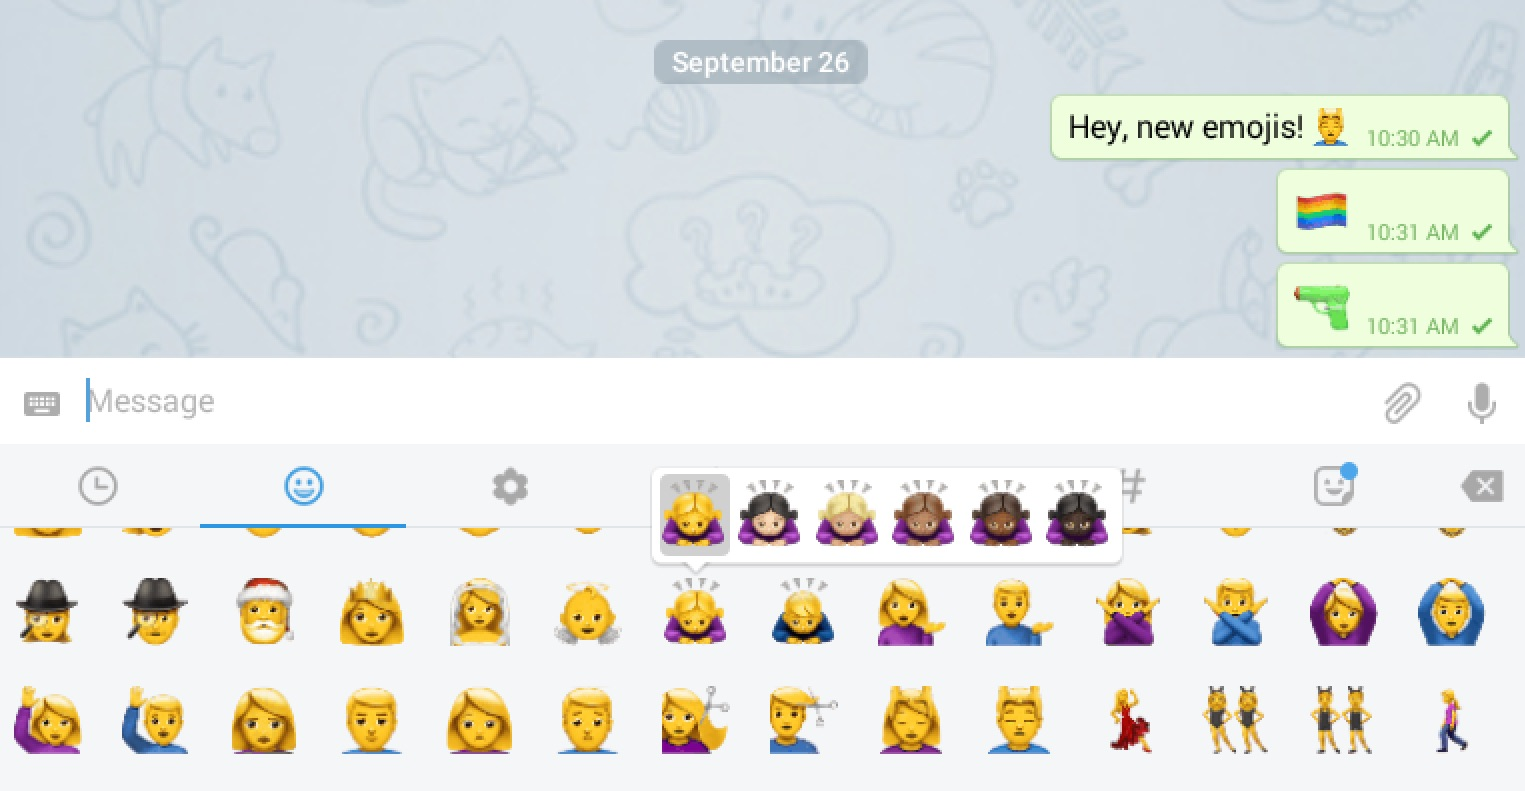 Telegram Allows Custom Stickers To Be Uploaded And Assigned Certain Emojis Can A Relevant Emoji Apear As An Tooltip